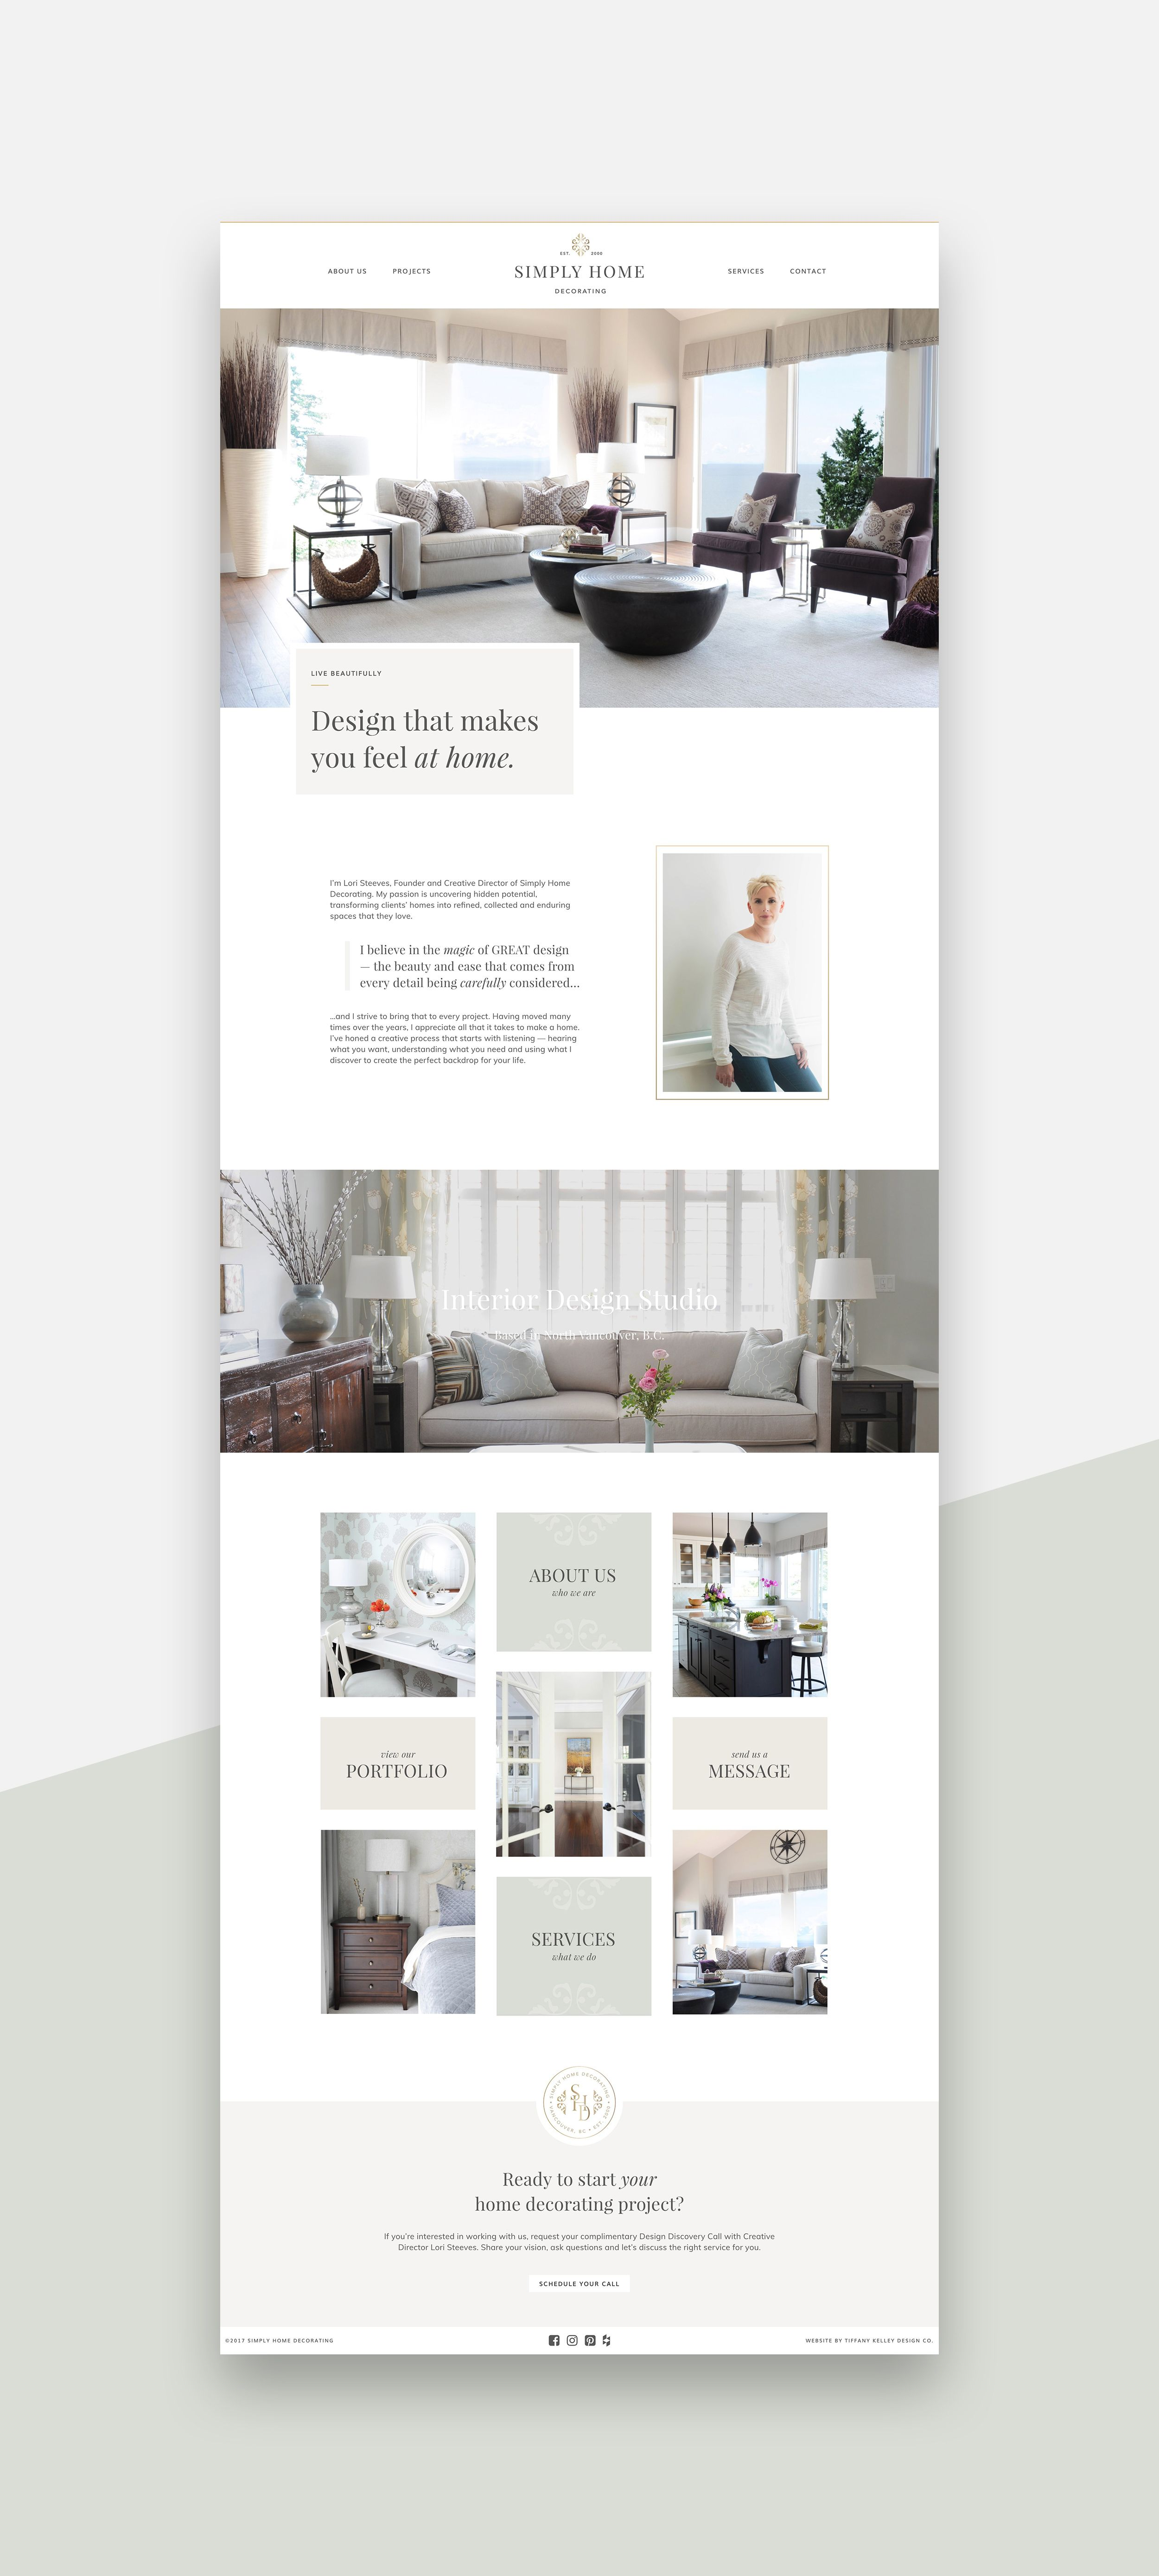 Simply Home Decorating Interior Design Website Web Layout